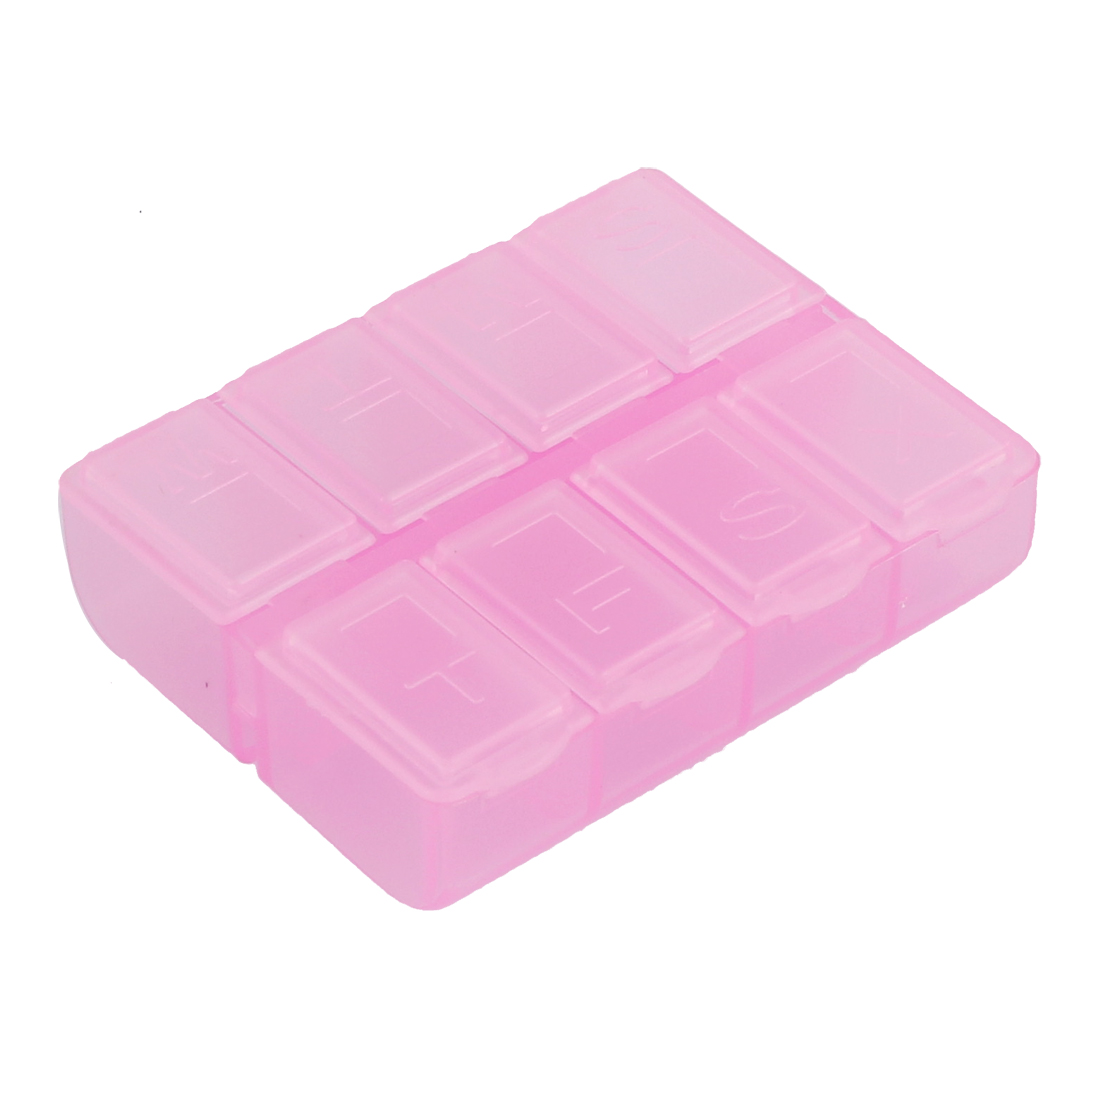 Pill Tablet Medicine 8 Slots Dispenser Organizer Storage Case Box Clear Pink